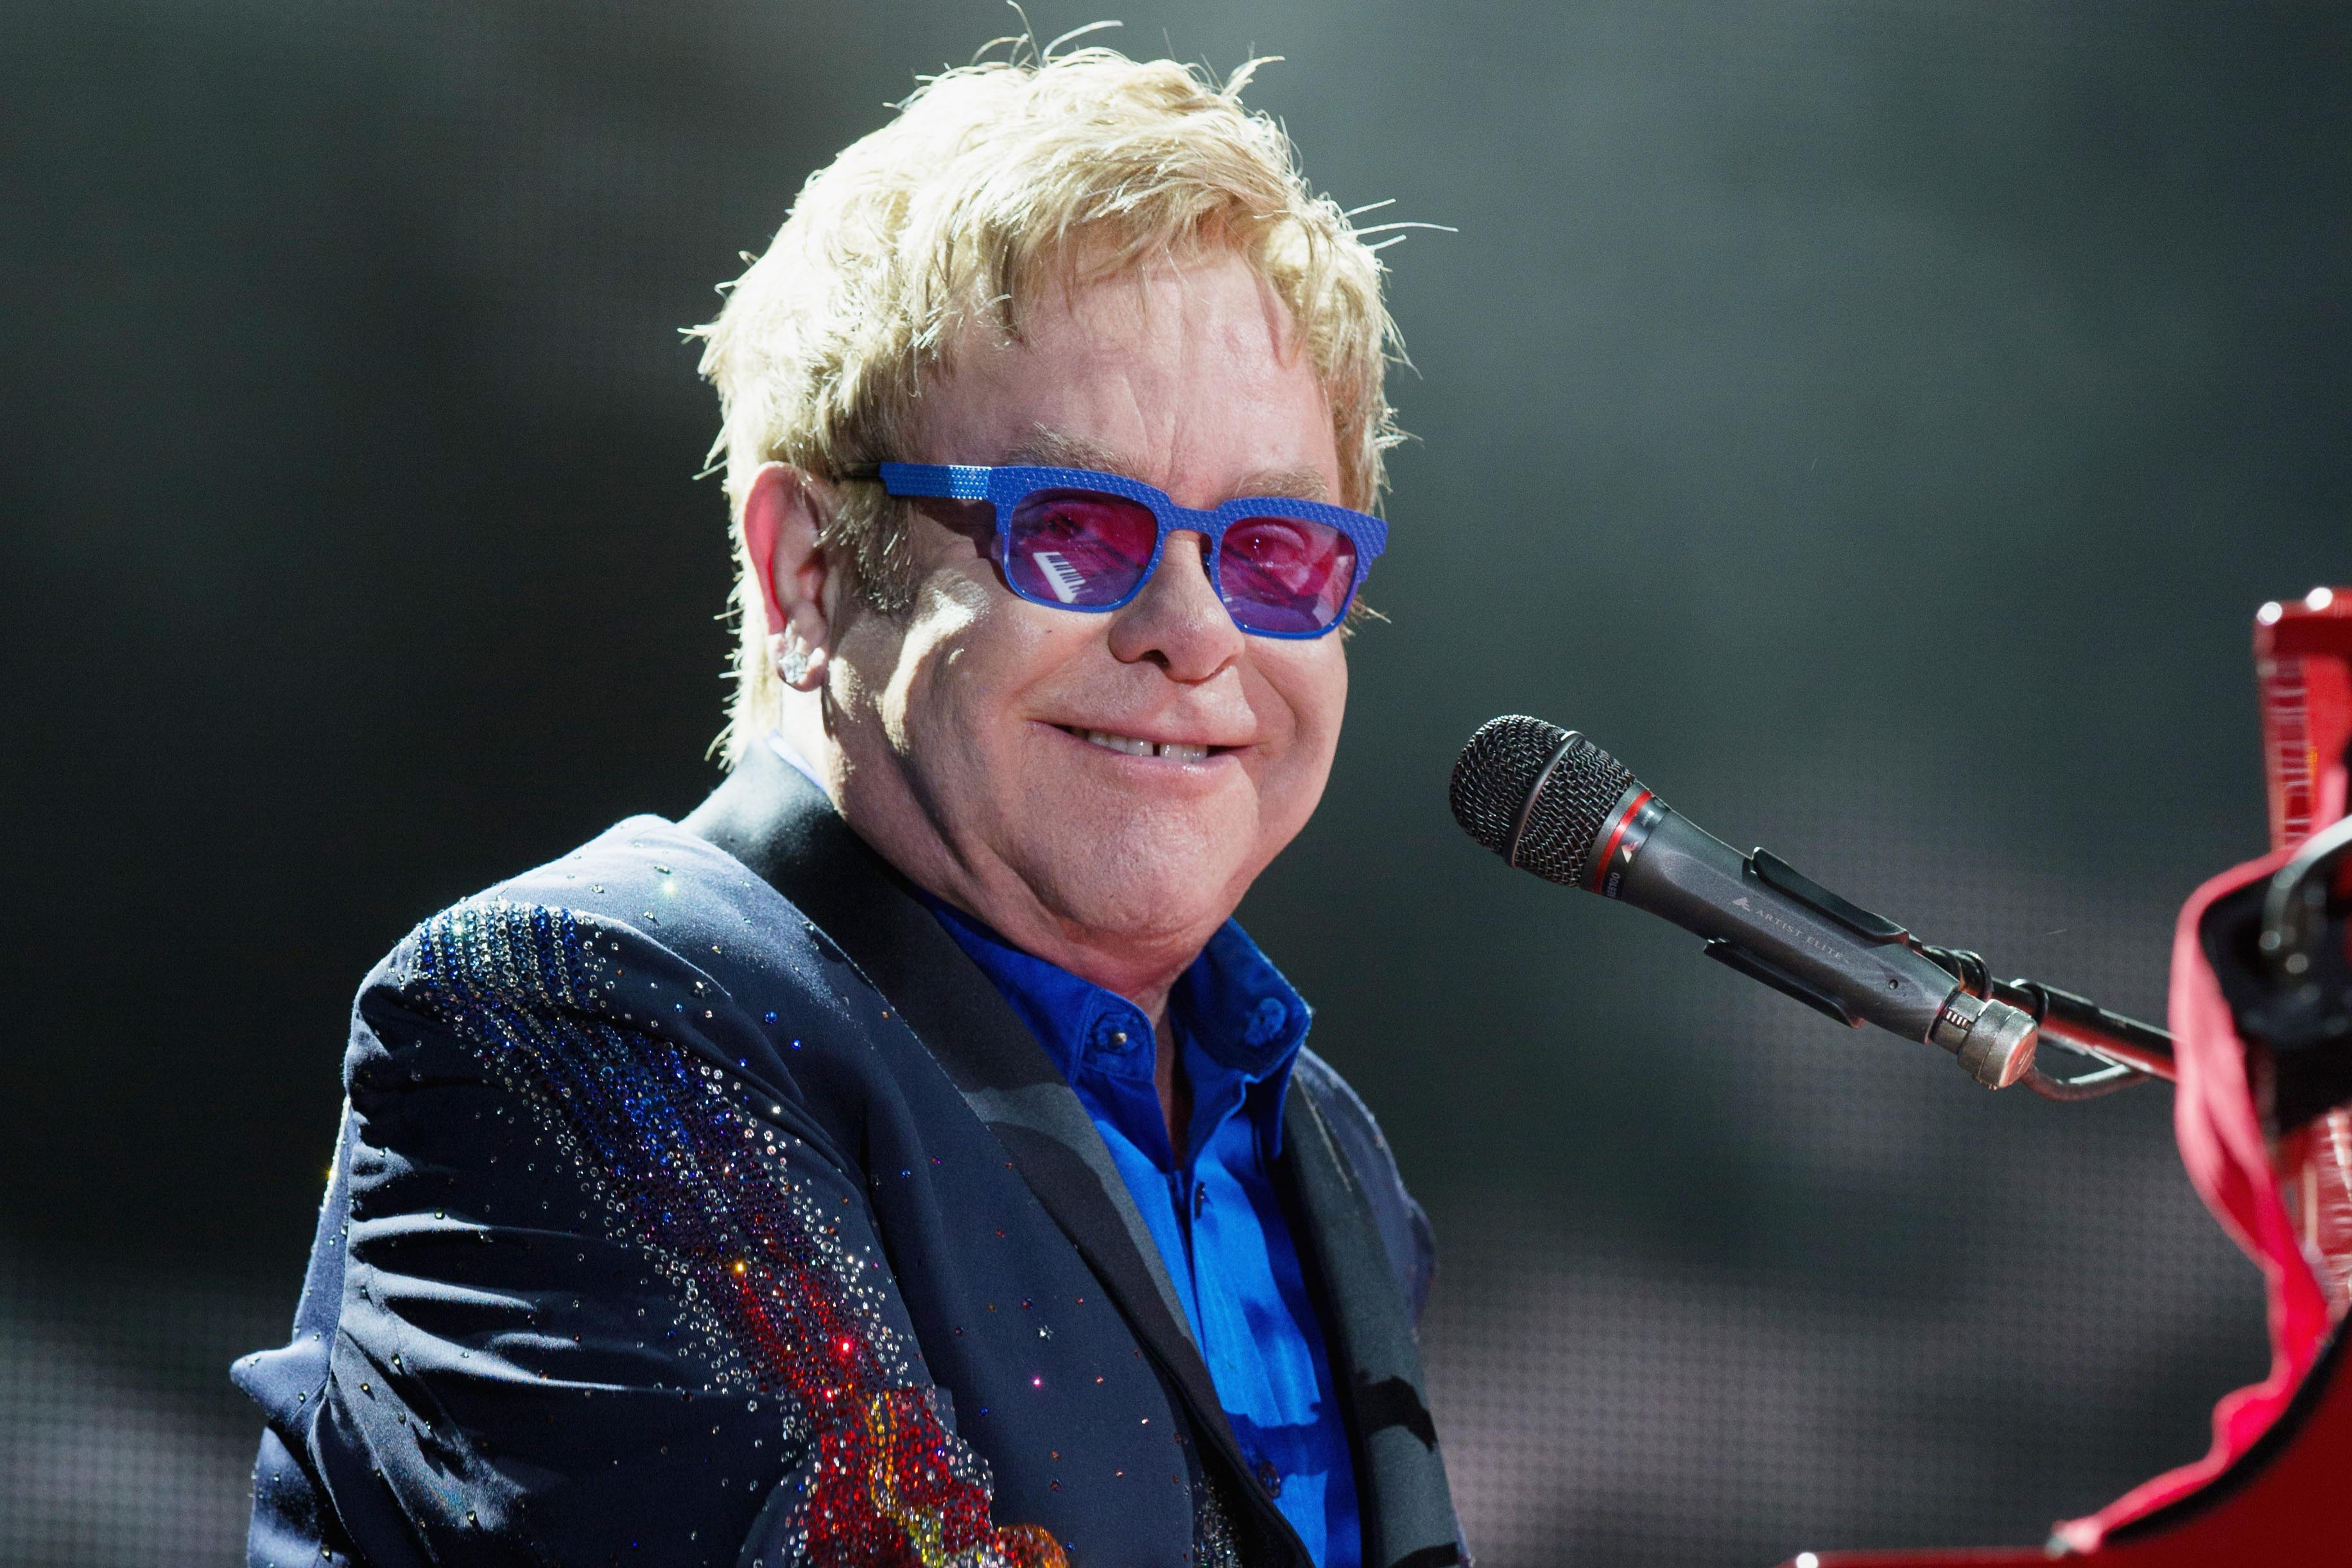 Elton John HD Wallpapers 7wallpapersnet 3664x2443